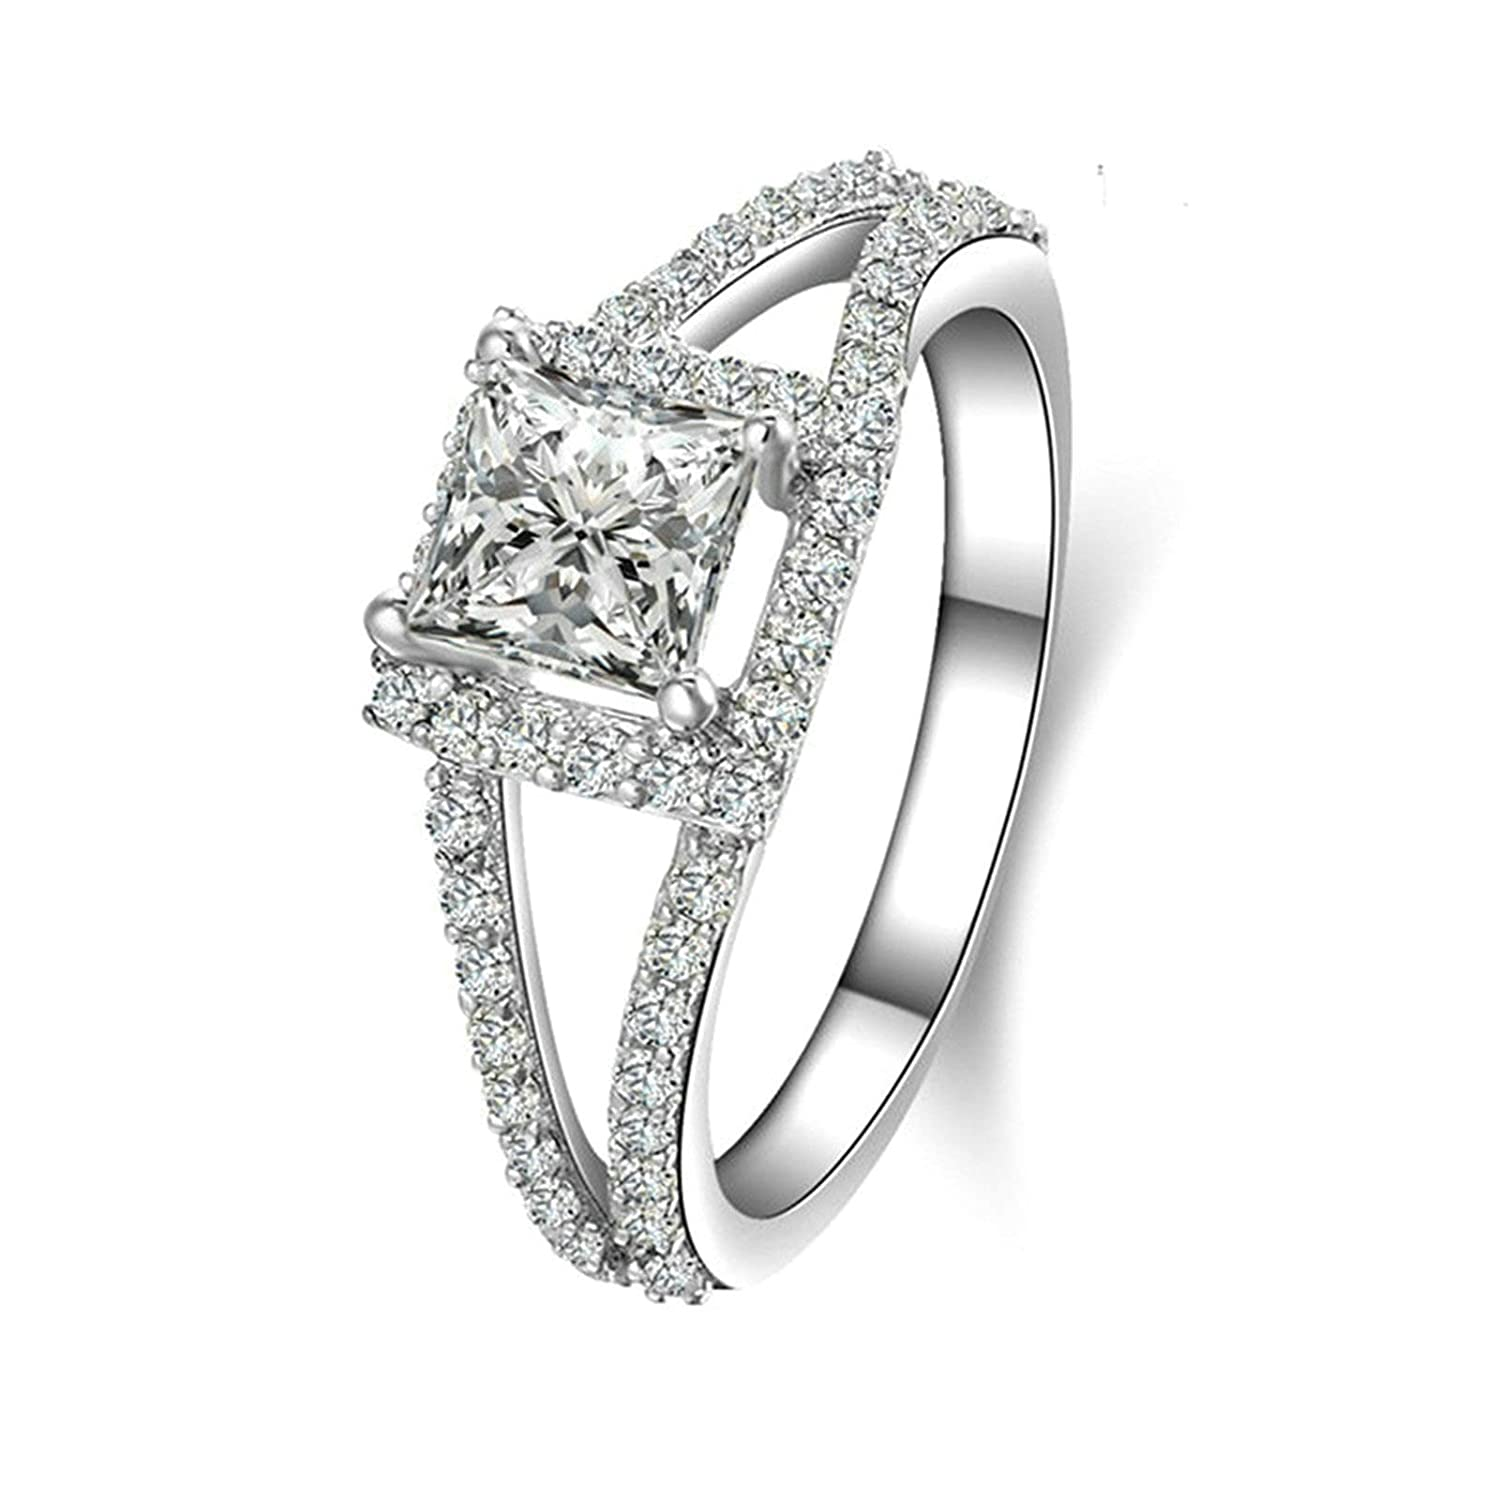 9b3689ff8ace8 Amazon.com: Aooaz Ring for Weddings Silver Material Ring Stone ...